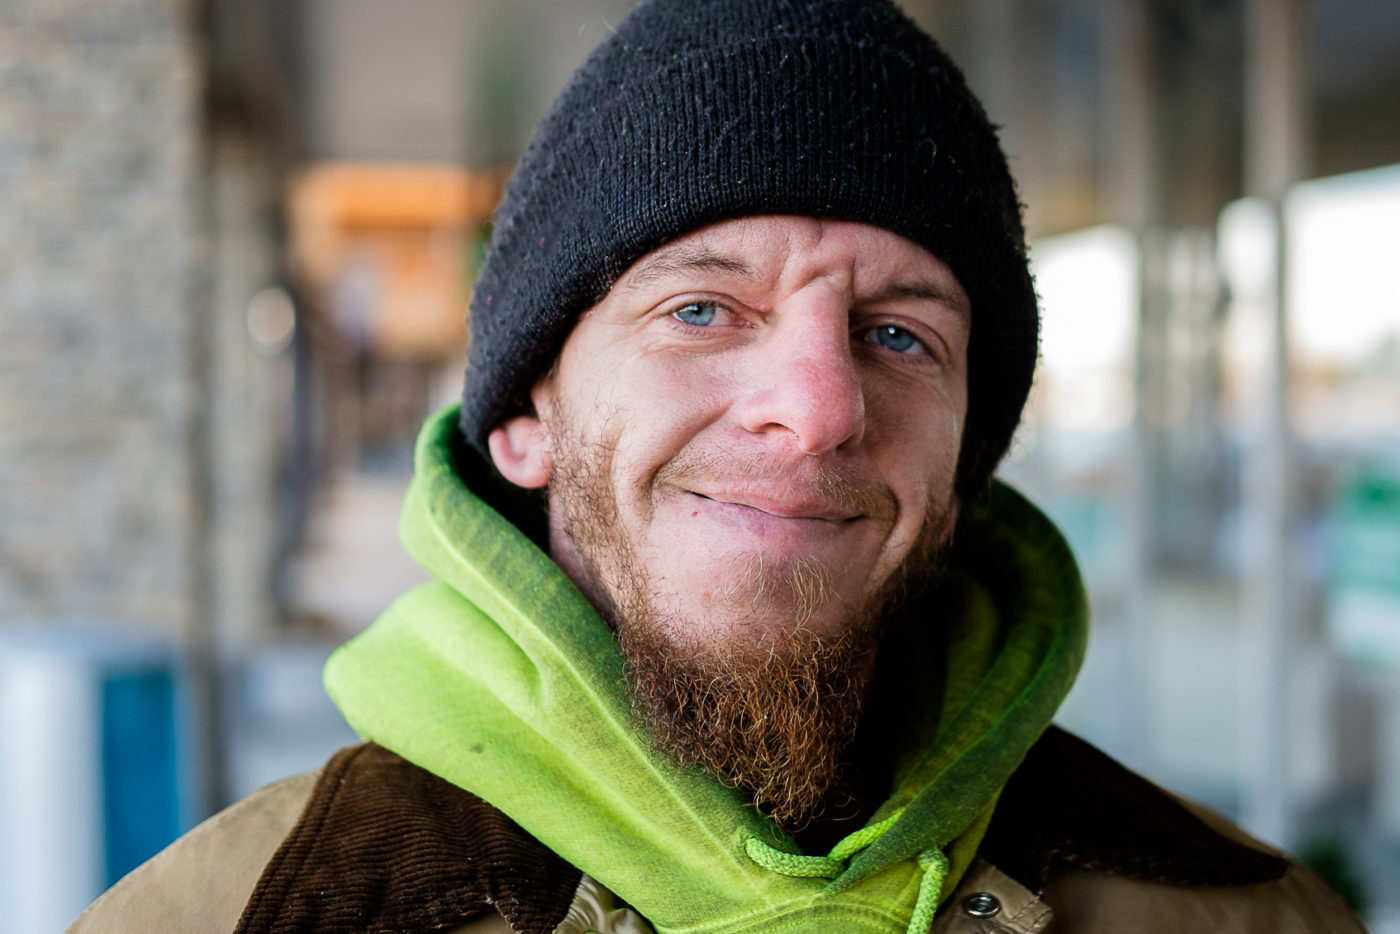 Portraits of the Jersey Shore From Homeless to Church Home, homelessness in the U.S., a story of hope. #hope #homelessness #portraitsofthejerseyshore #inspirational #inspiration